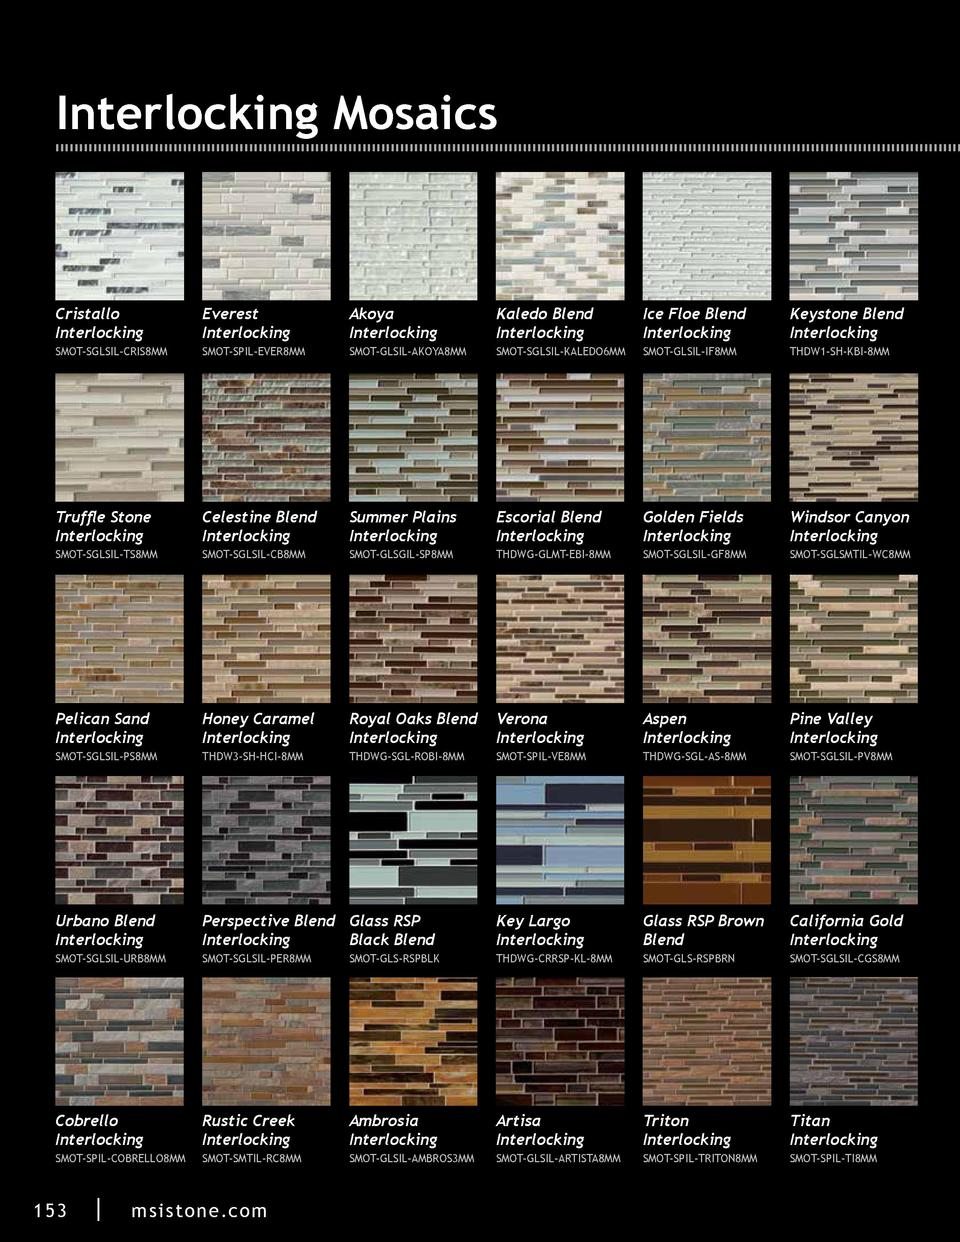 Interlocking Mosaics  Cristallo Interlocking  Everest Interlocking  Akoya Interlocking  Kaledo Blend Interlocking  Ice Flo...